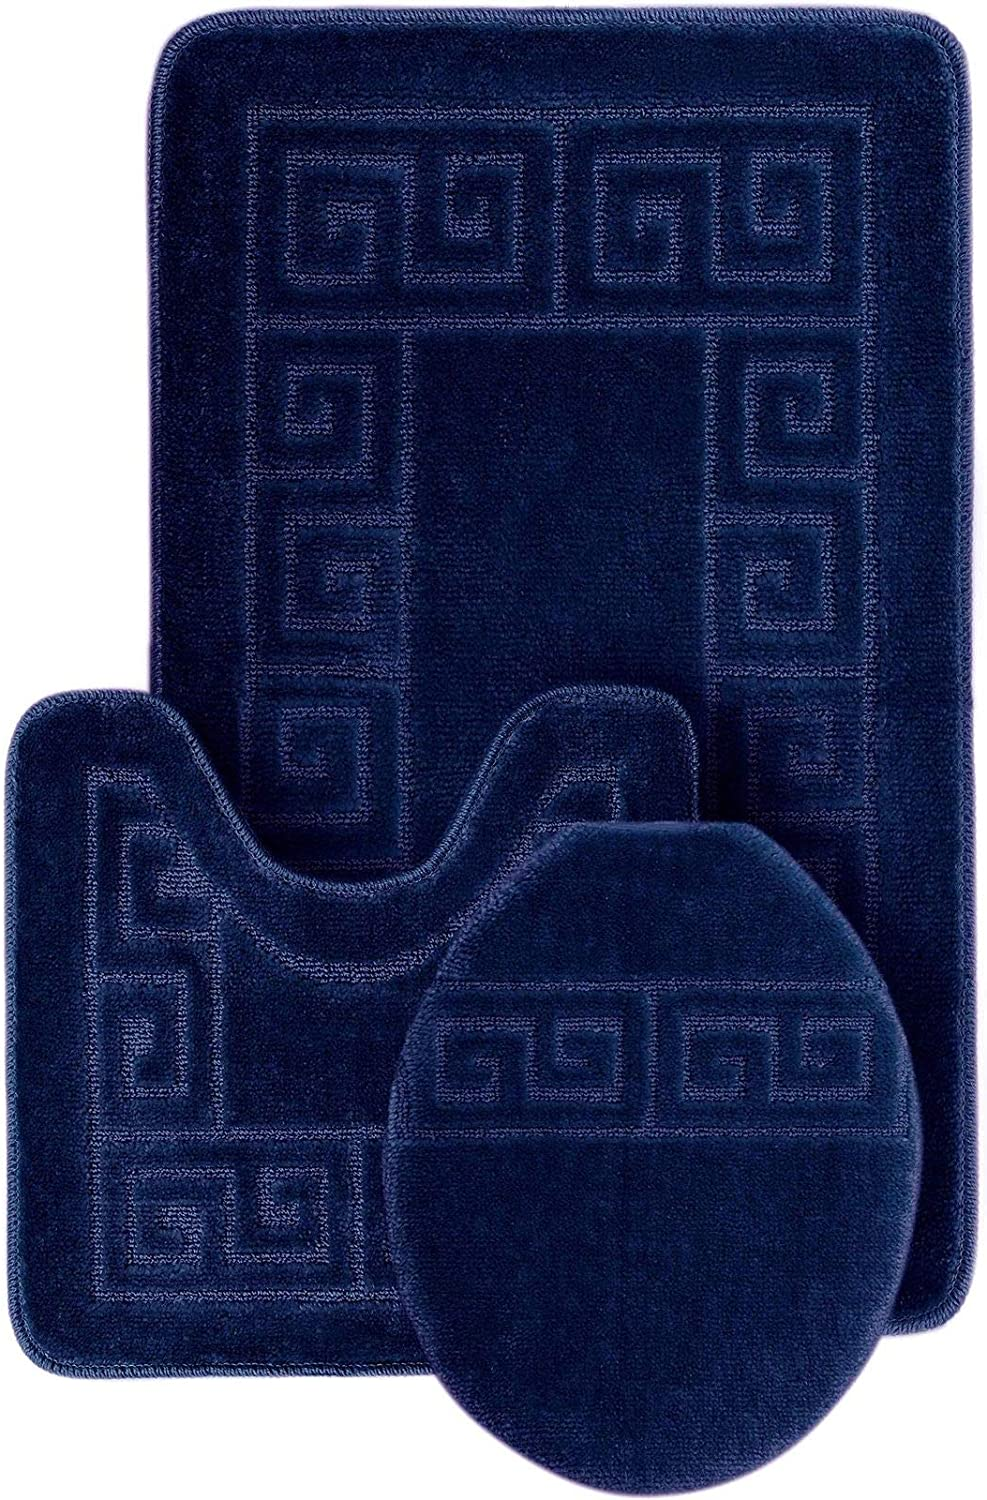 Amazon Com Wpm World Products Mart Bathroom Rugs Set 3 Piece Bath Pattern Rug 20 X32 Large Contour Mats 20 X20 With Lid Cover Navy Home Kitchen